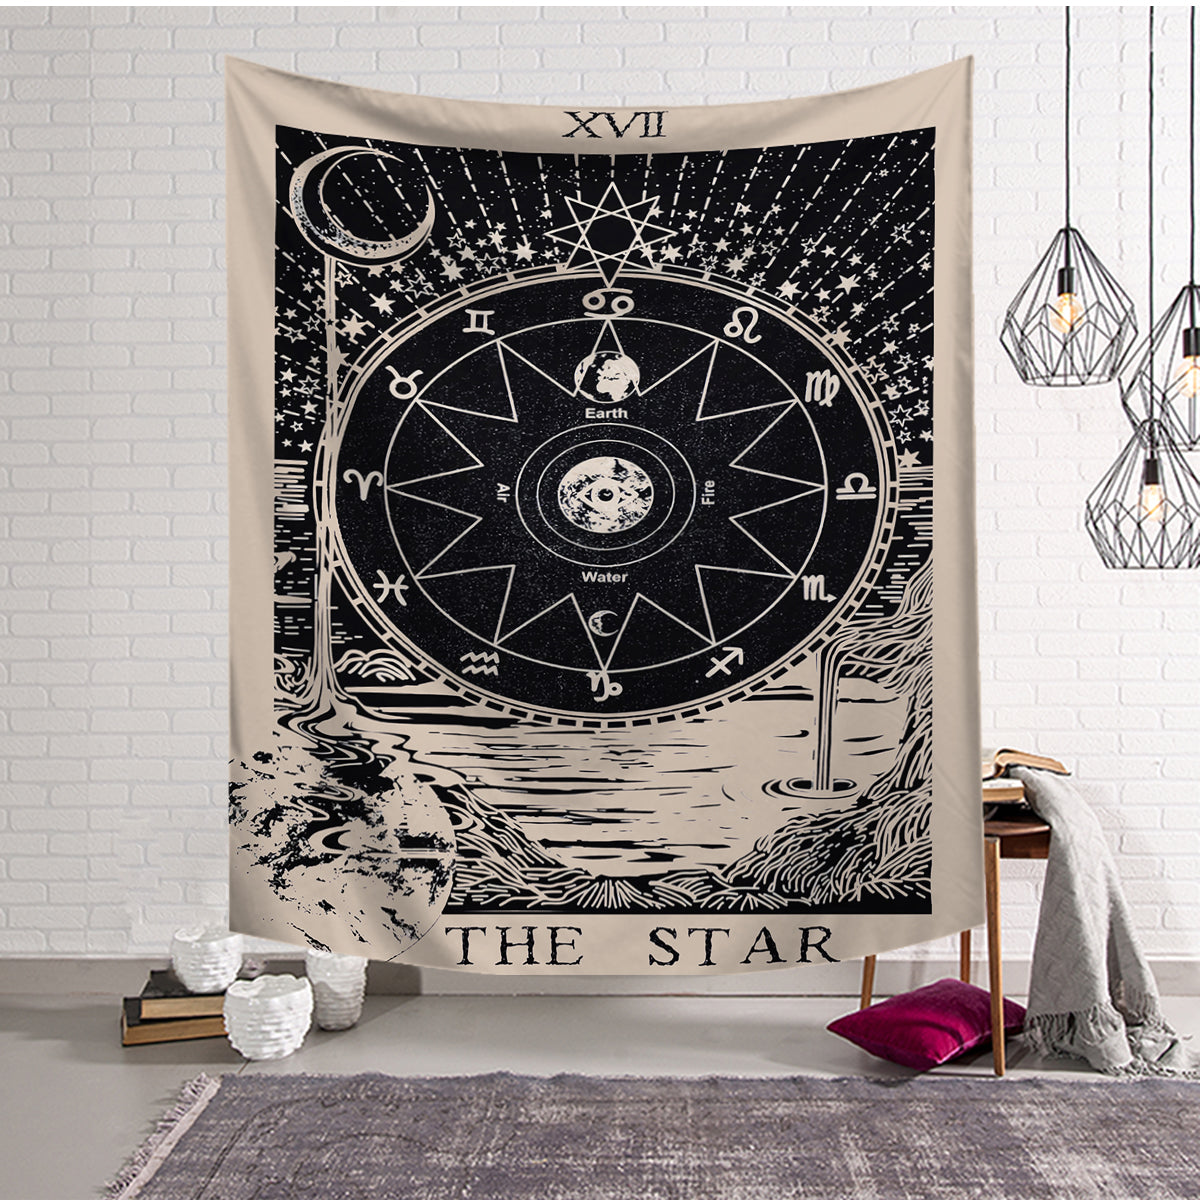 Astrology The Star Compass Tarot Tapestry